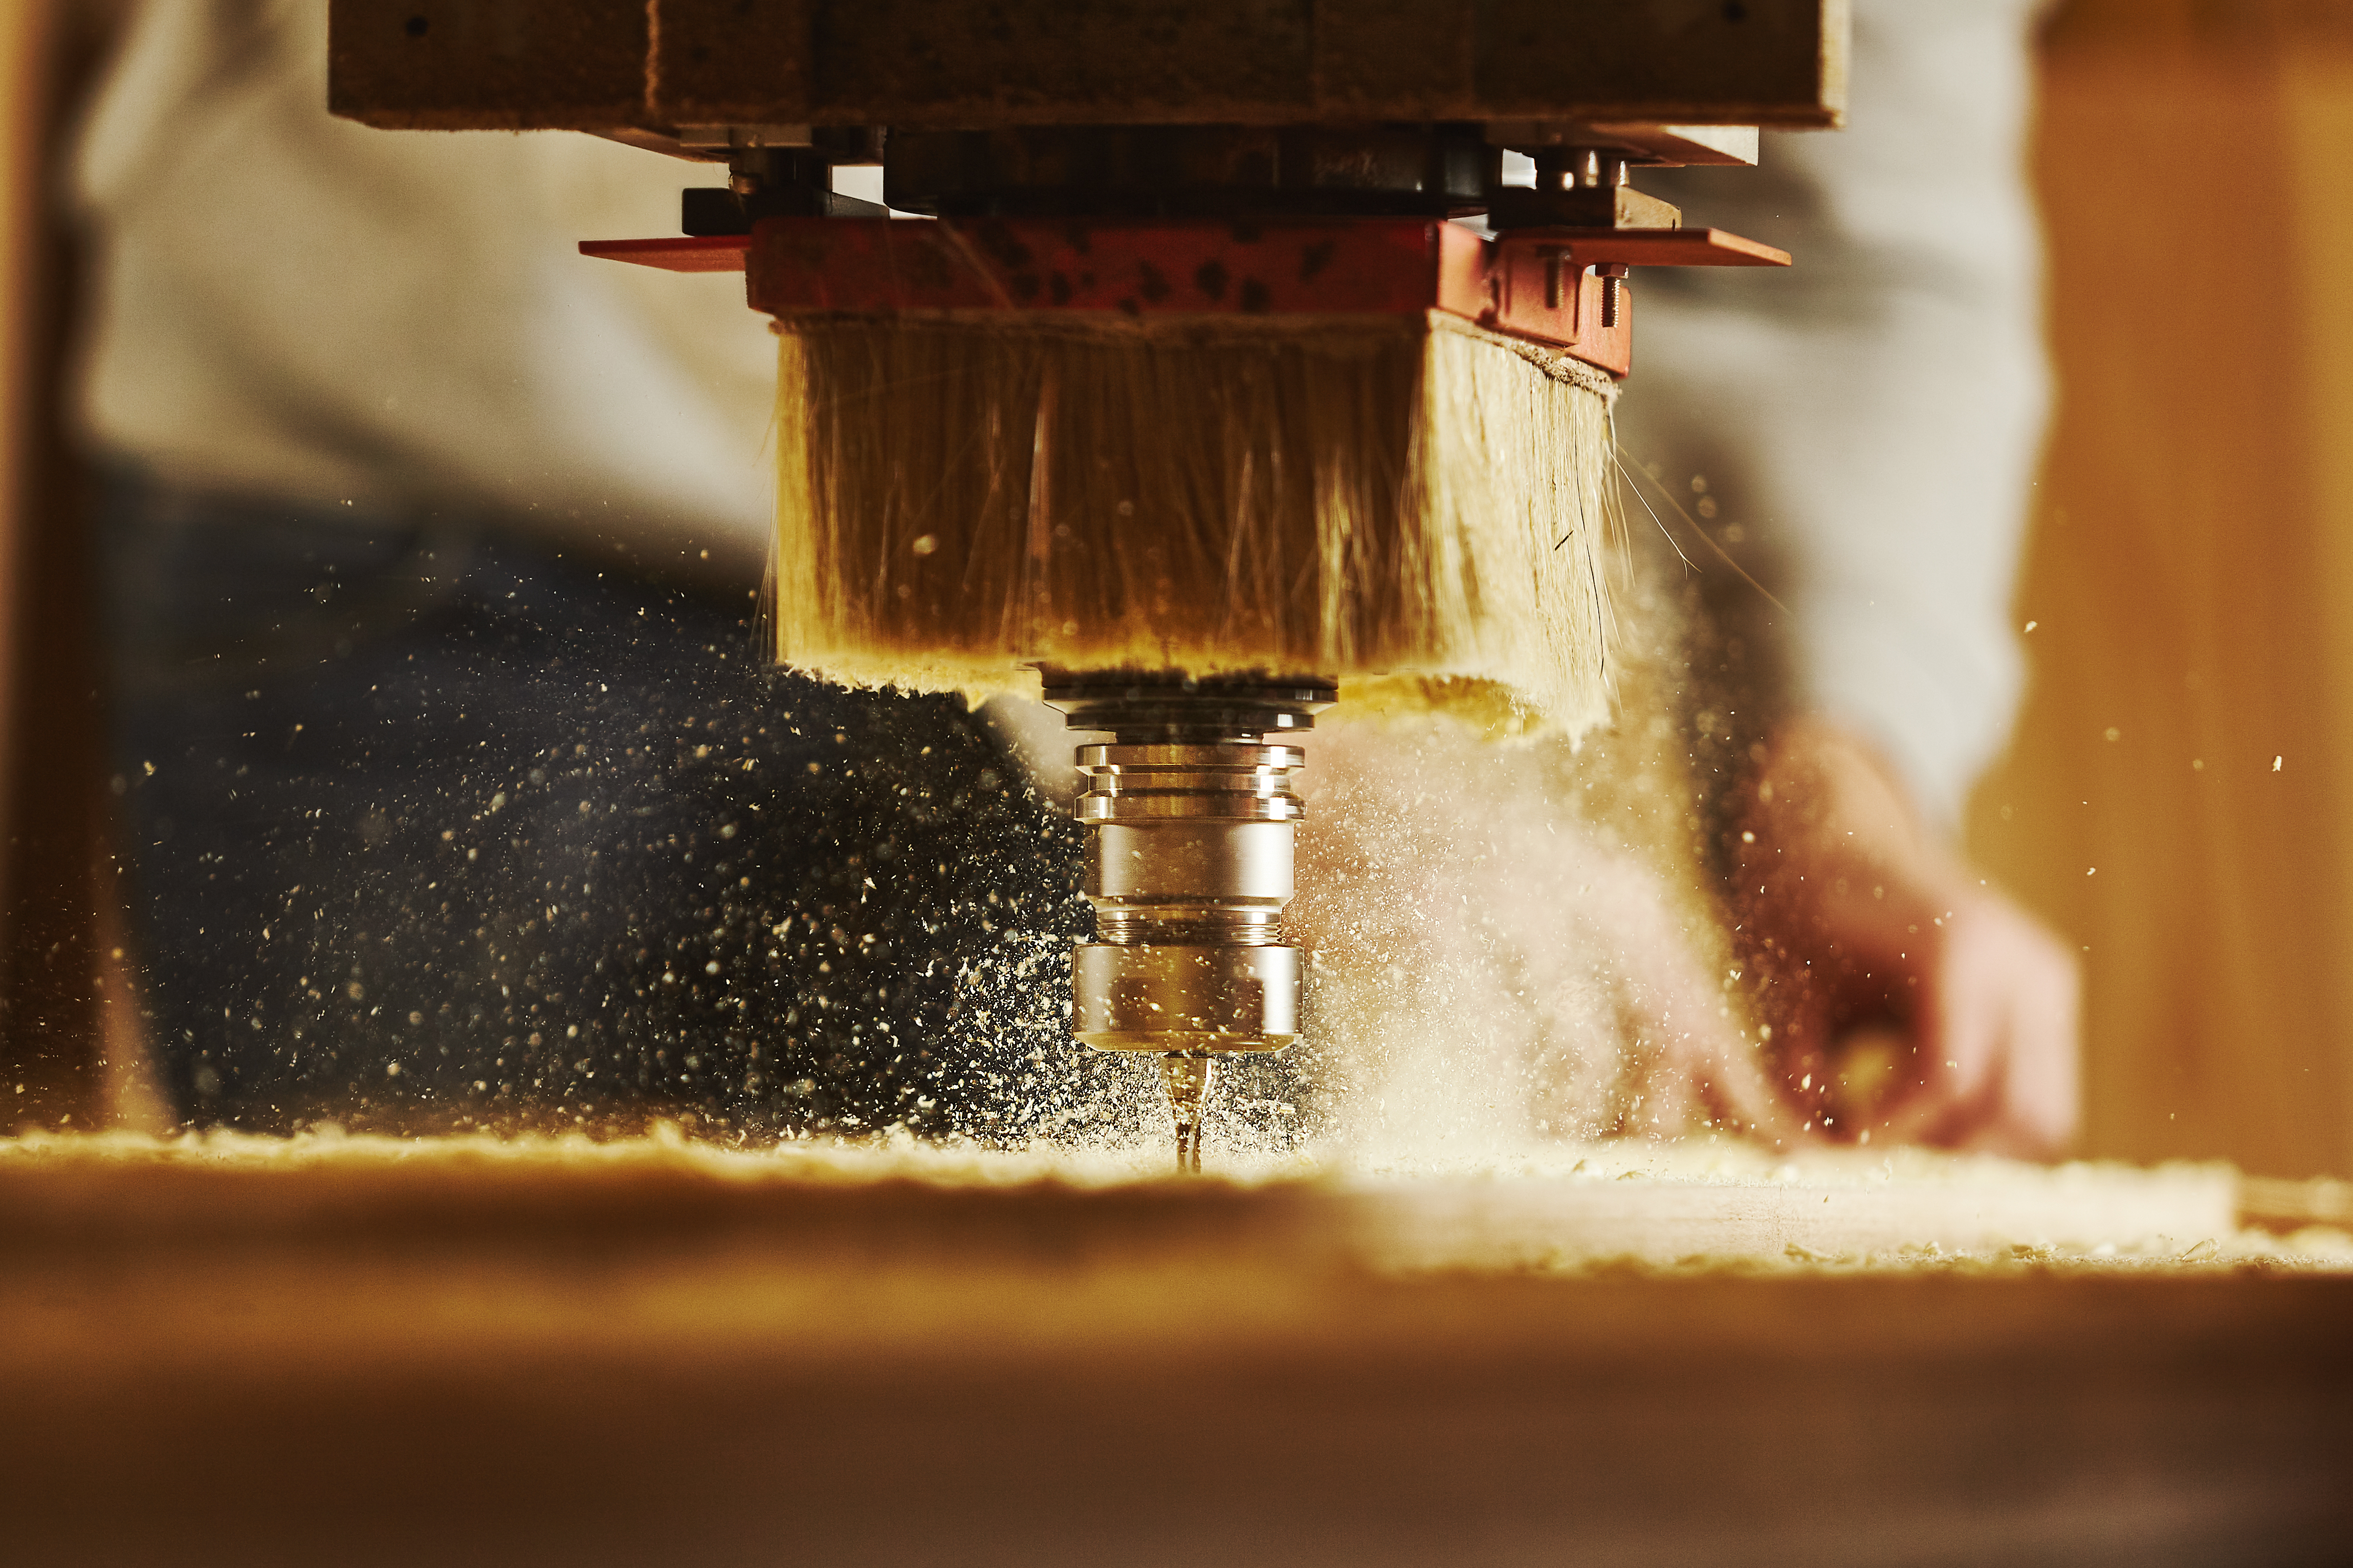 Cnc machine working, cutting wood. Woodwork industry